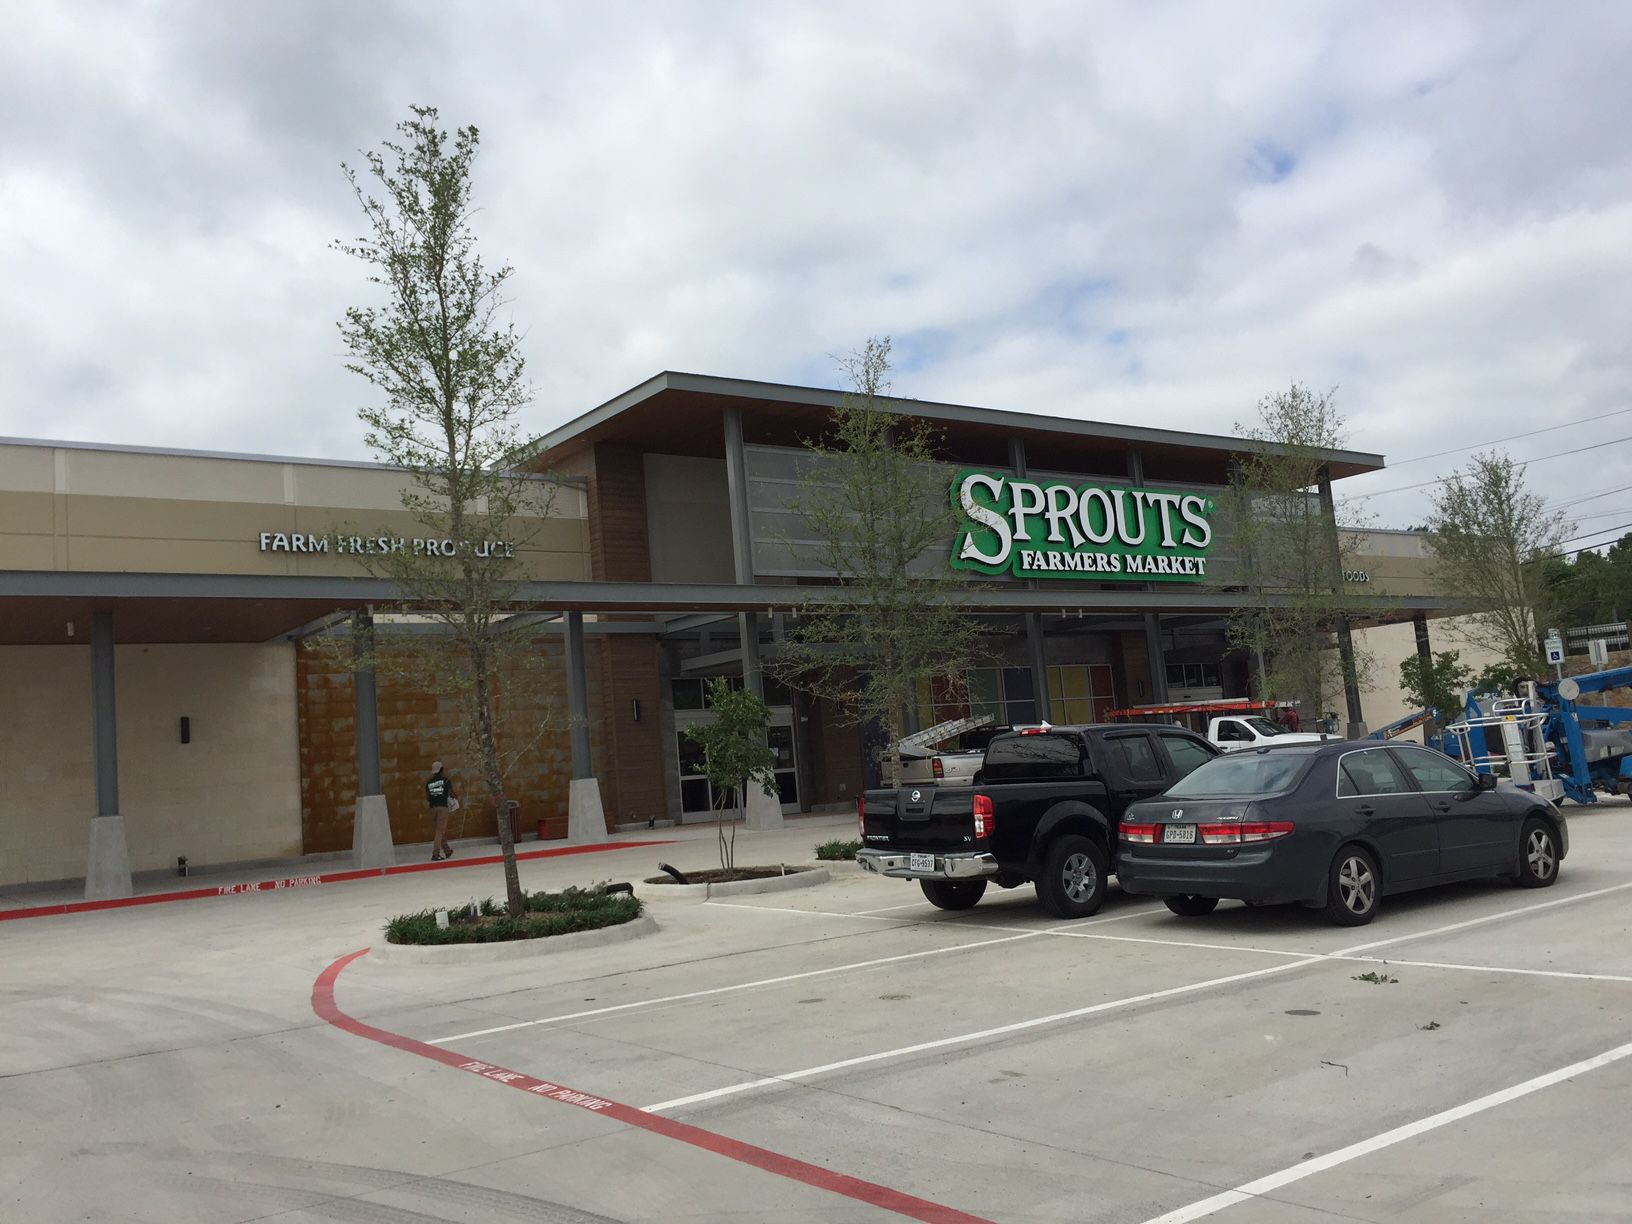 The shopping center at Lake Highlands Town Center includes a Sprouts grocery store at the southeast corner of Skillman St. and Walnut Hill Lane.